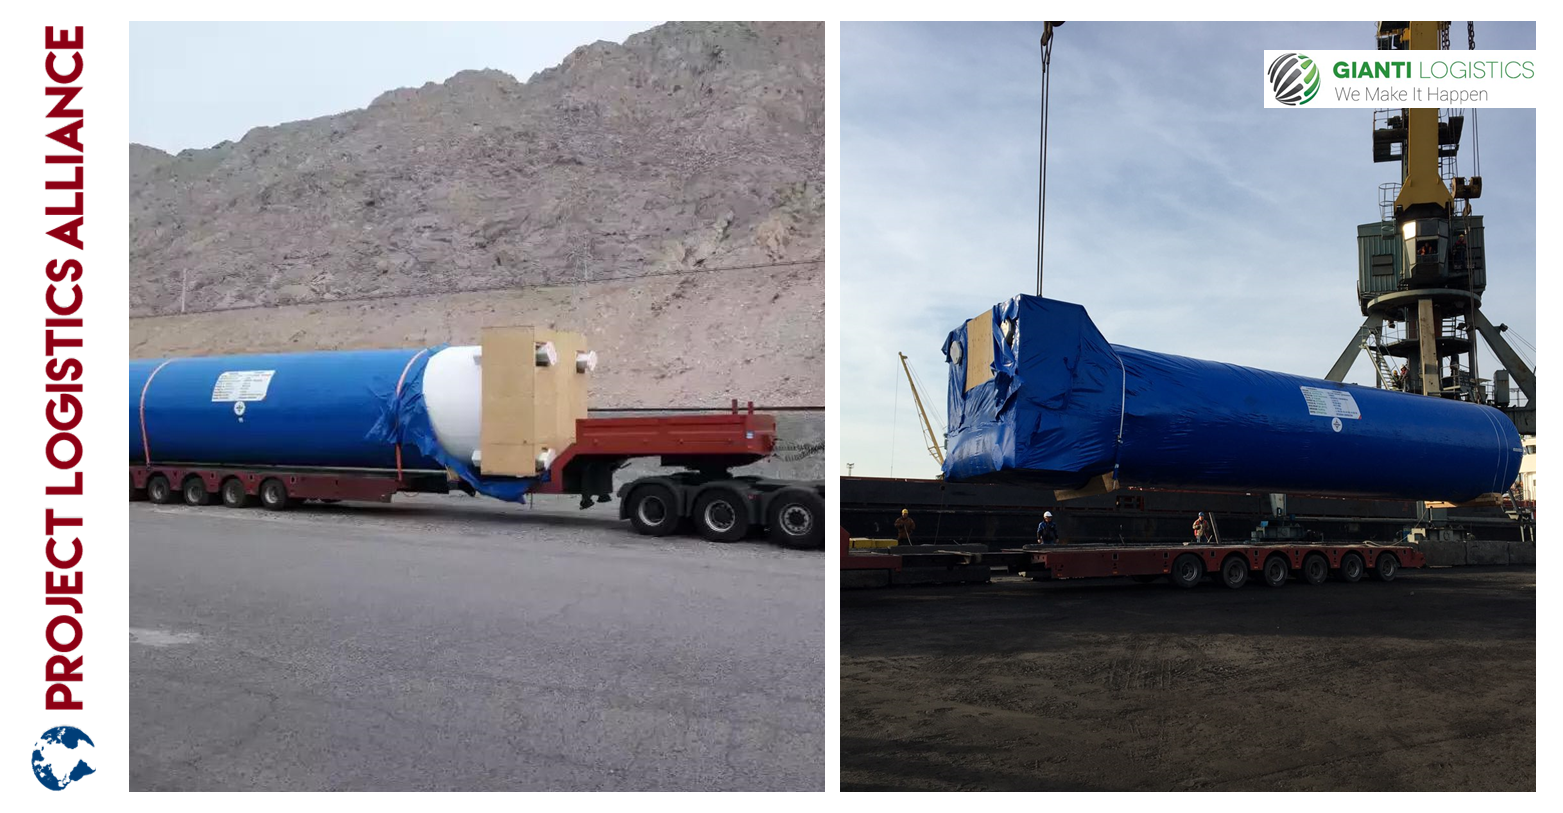 Gianti Logistics Delivers Equipment For Fertilizer Plant In Turkmenistan